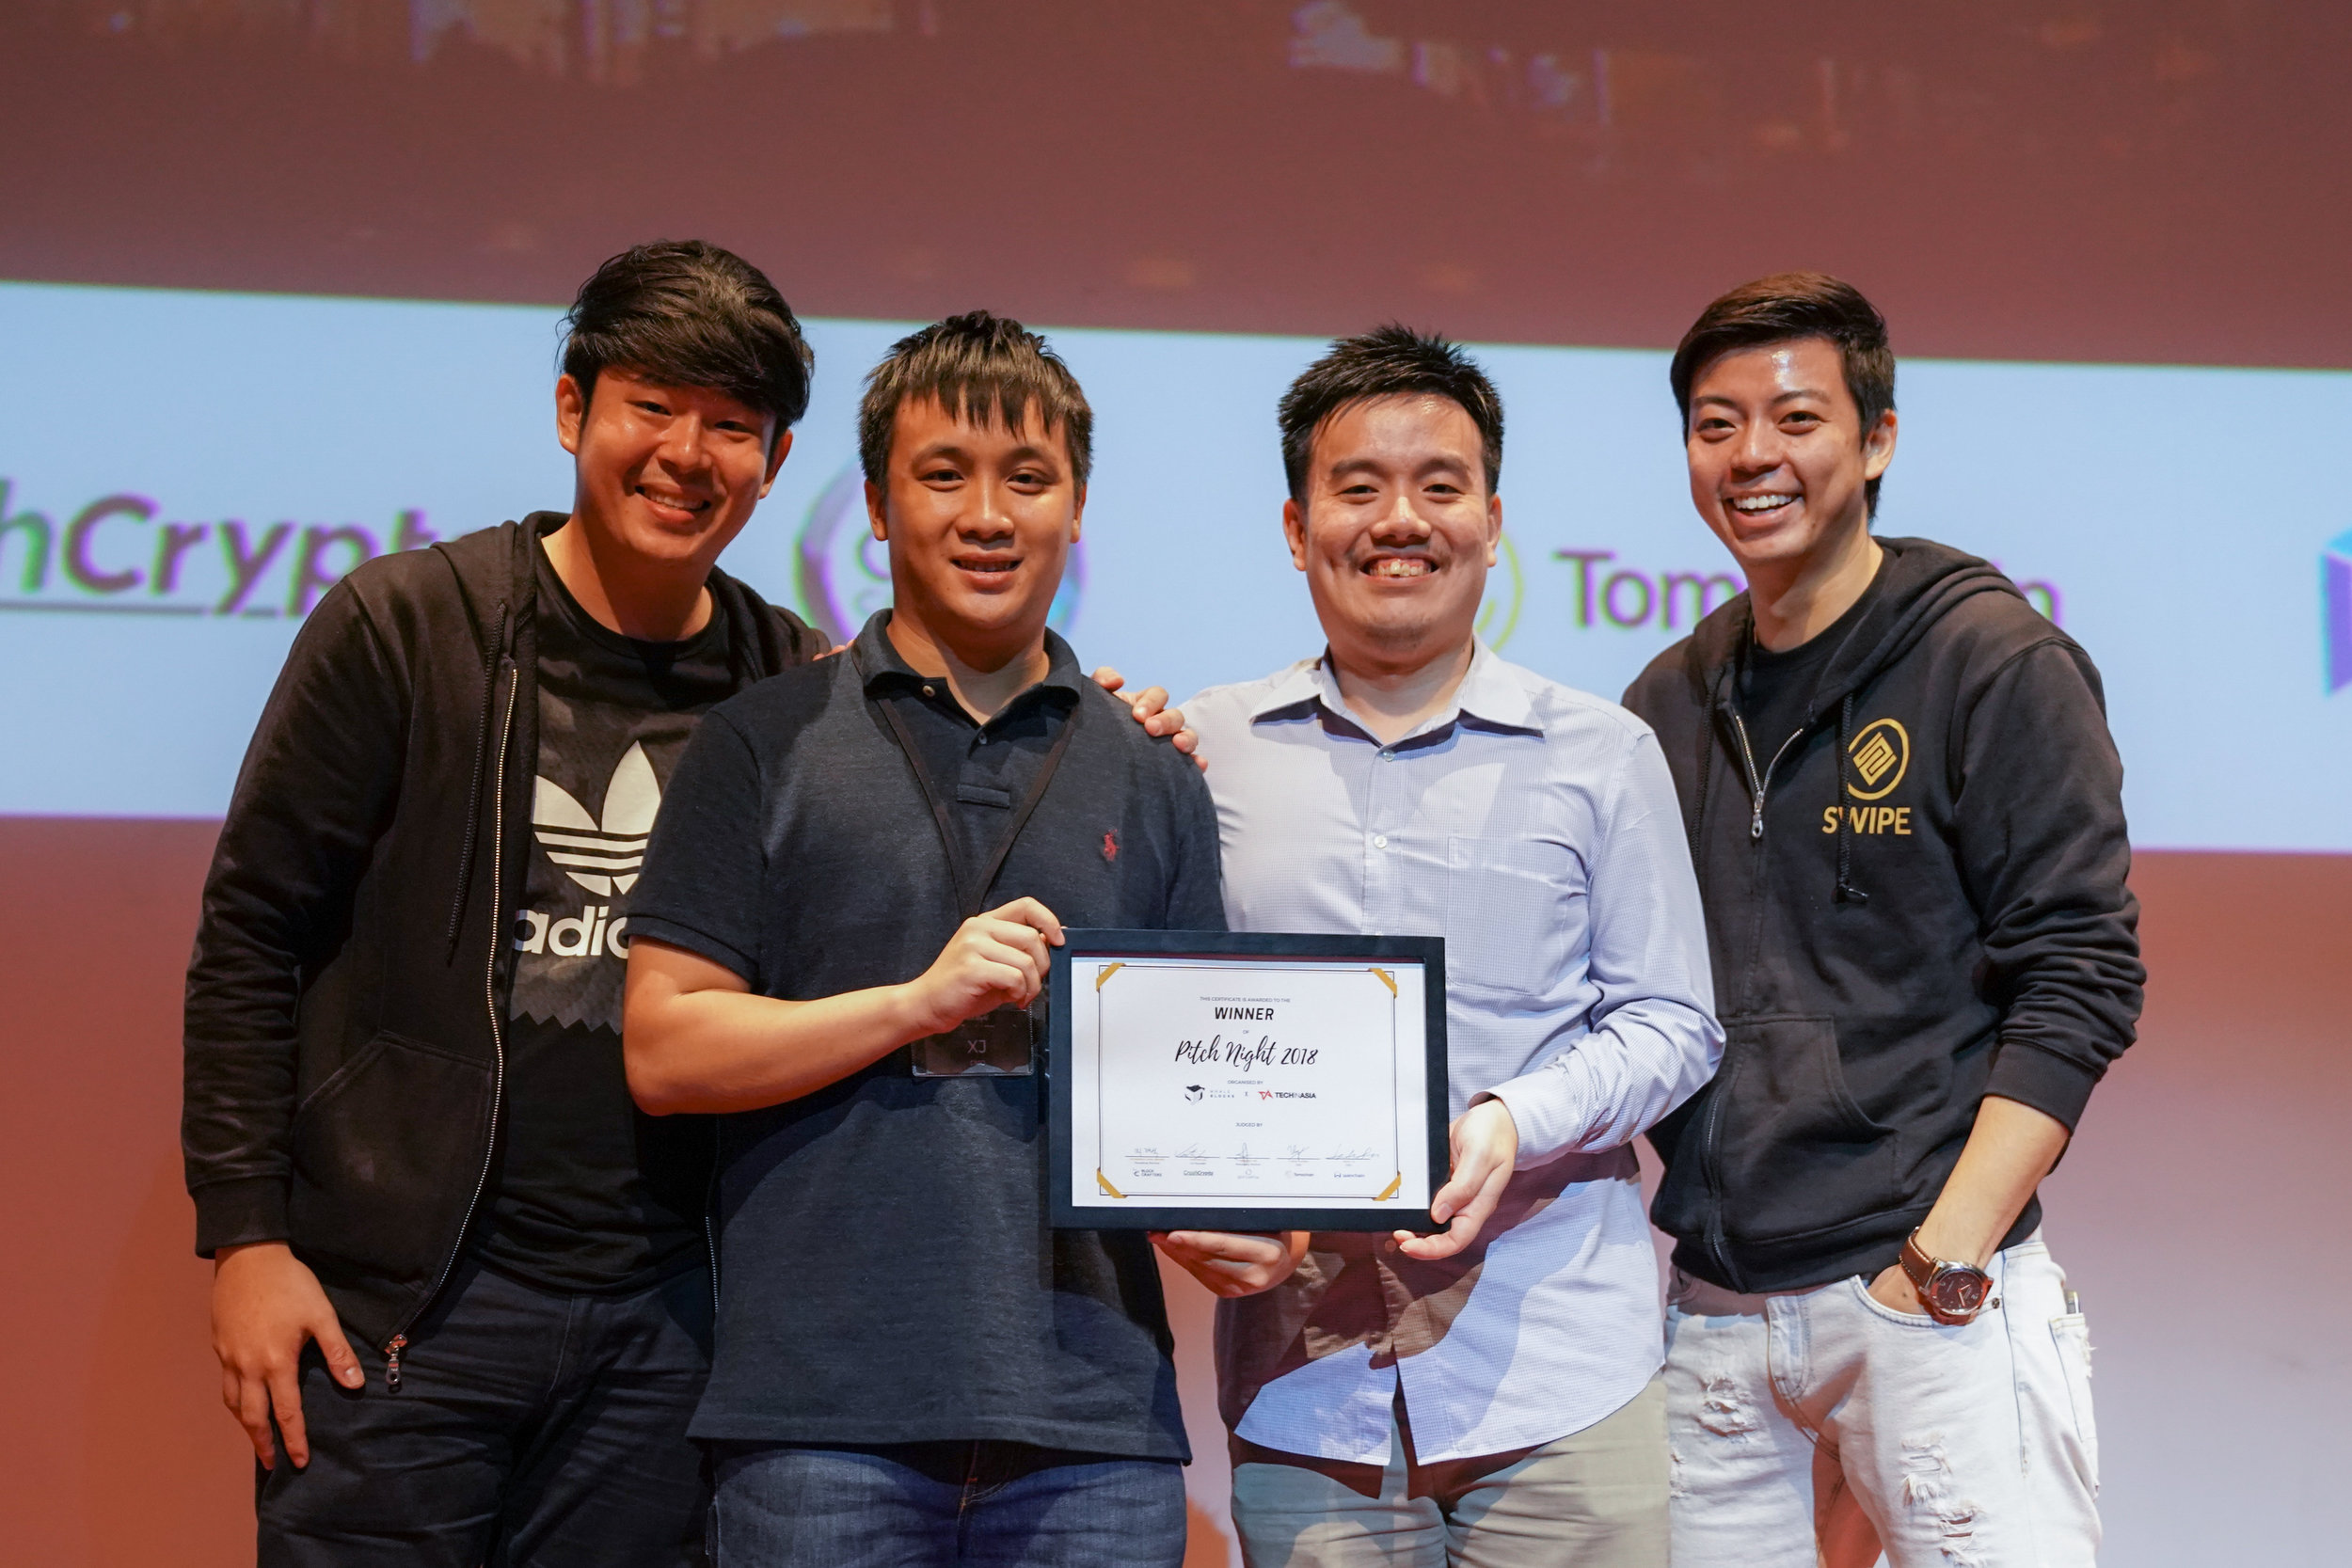 Winners of Pitch Night 2018, the SWIPE team. From left: Malcolm Chang, Pang Xue Jie (COO of WhaleBlocks), Andrew Marchen and Adam Tan.